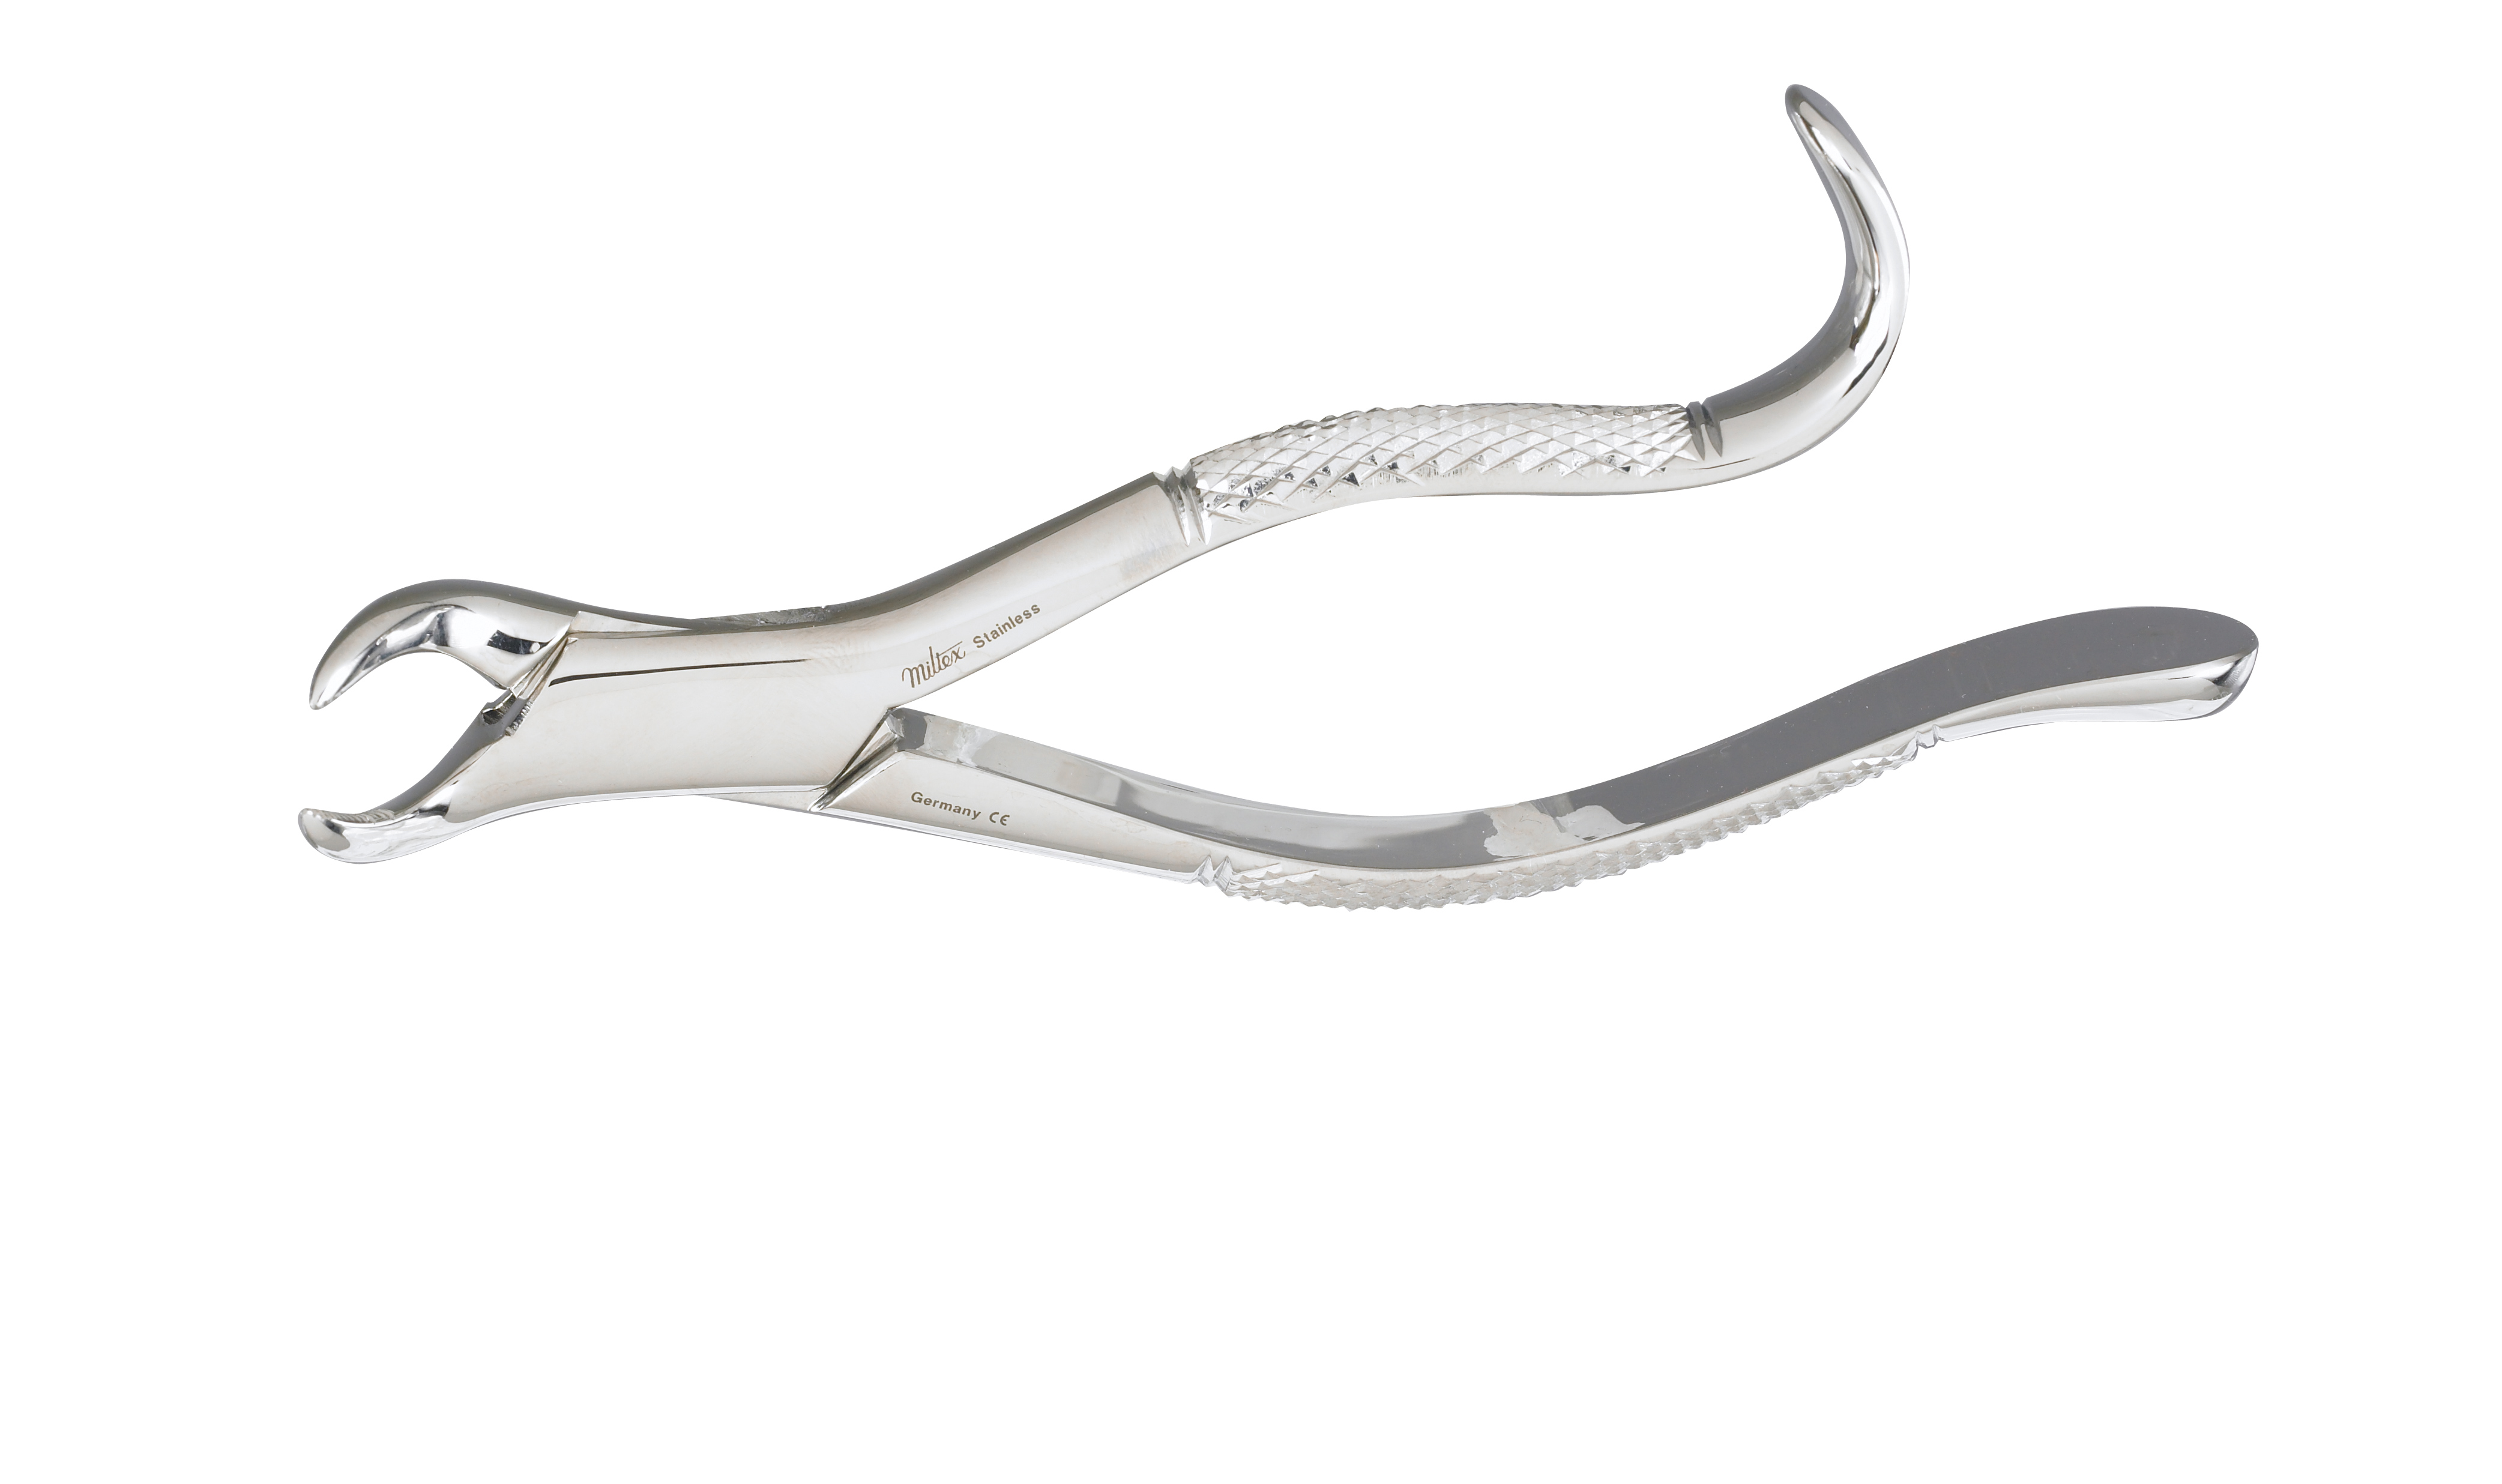 16-extracting-forceps-serrated-def16-sg-miltex.jpg